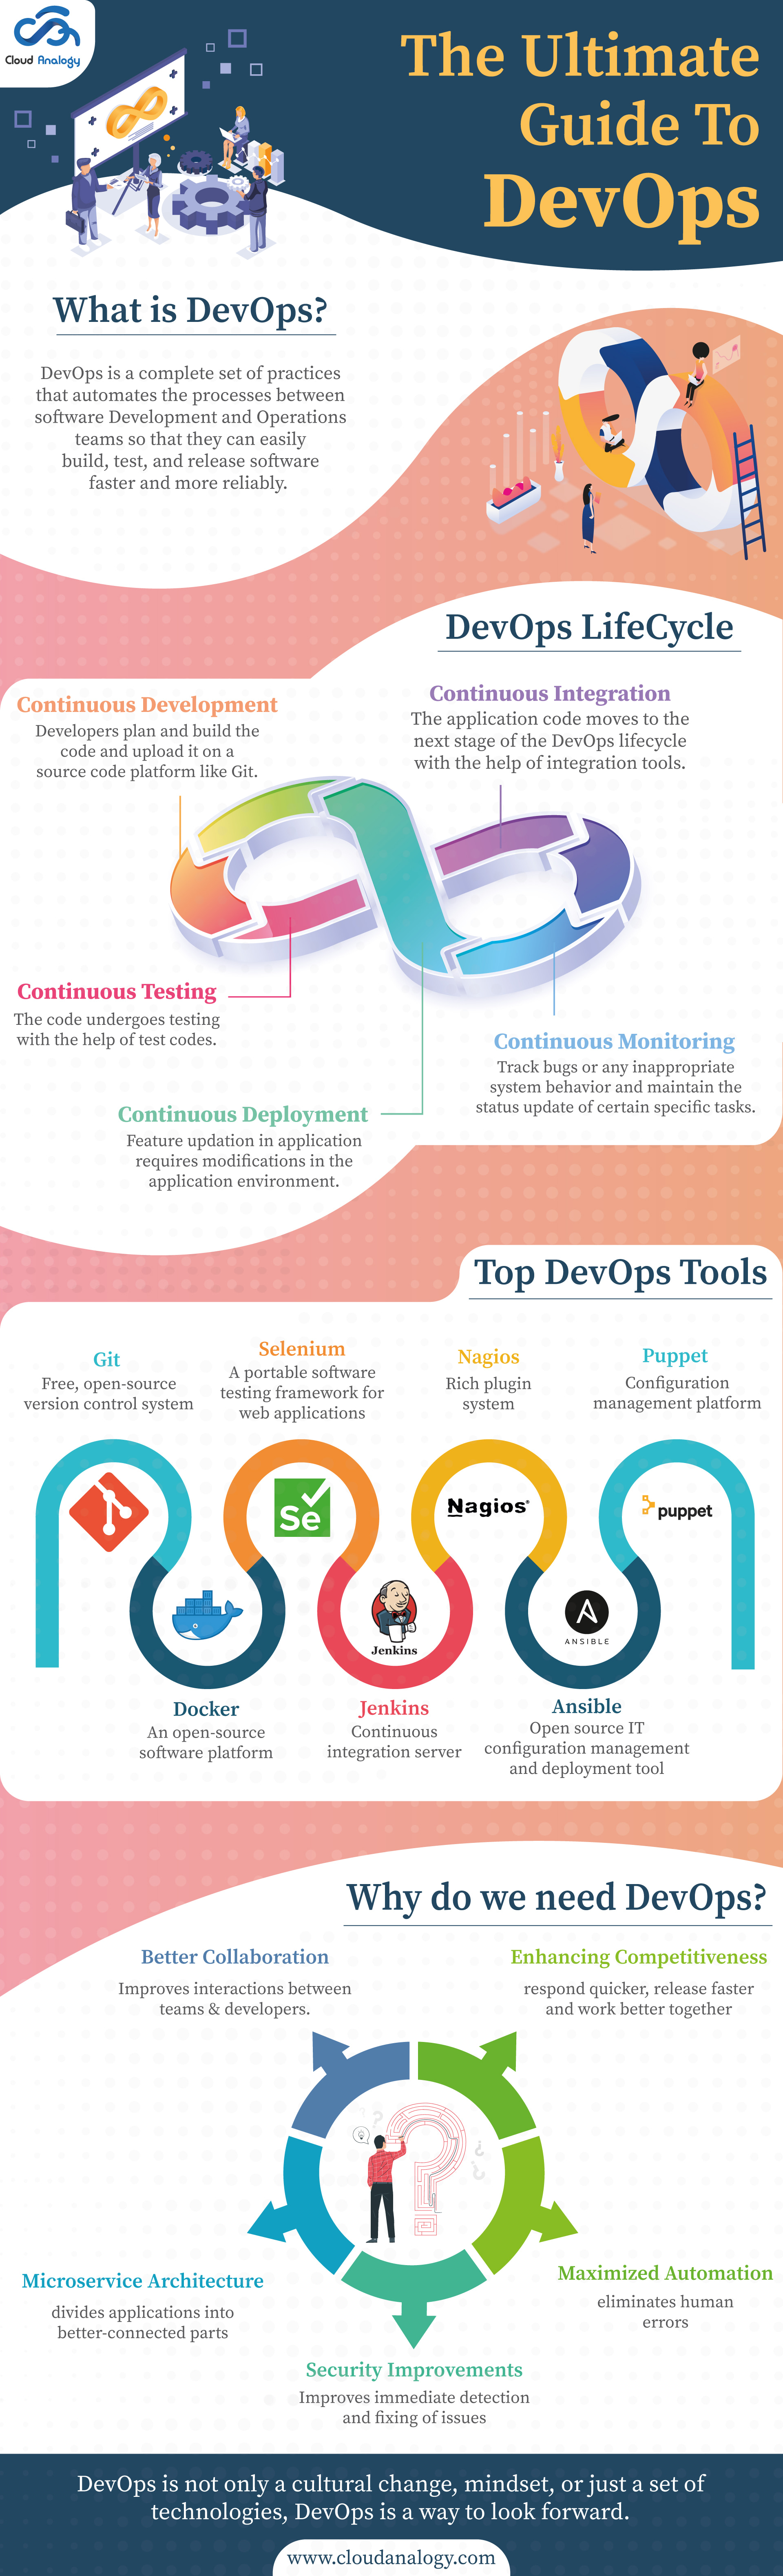 DevOps is a set of procedures that combines and automates the process between software development and Operations teams. DevOps will help build, test, and release the software faster and more positively. The way to look forward is what DevOps is all about.